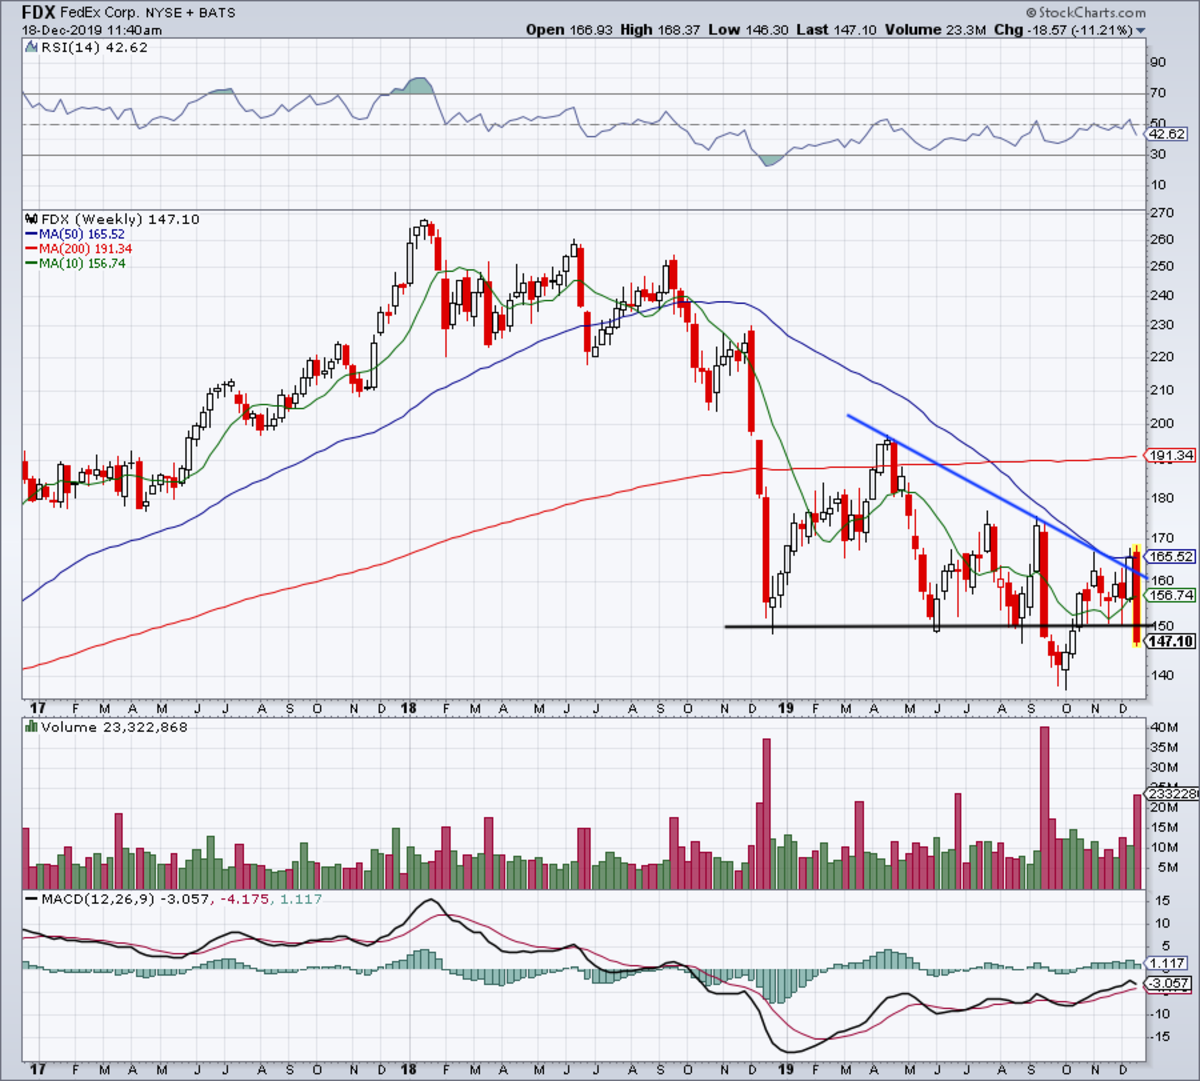 Weekly chart of FedEx stock.